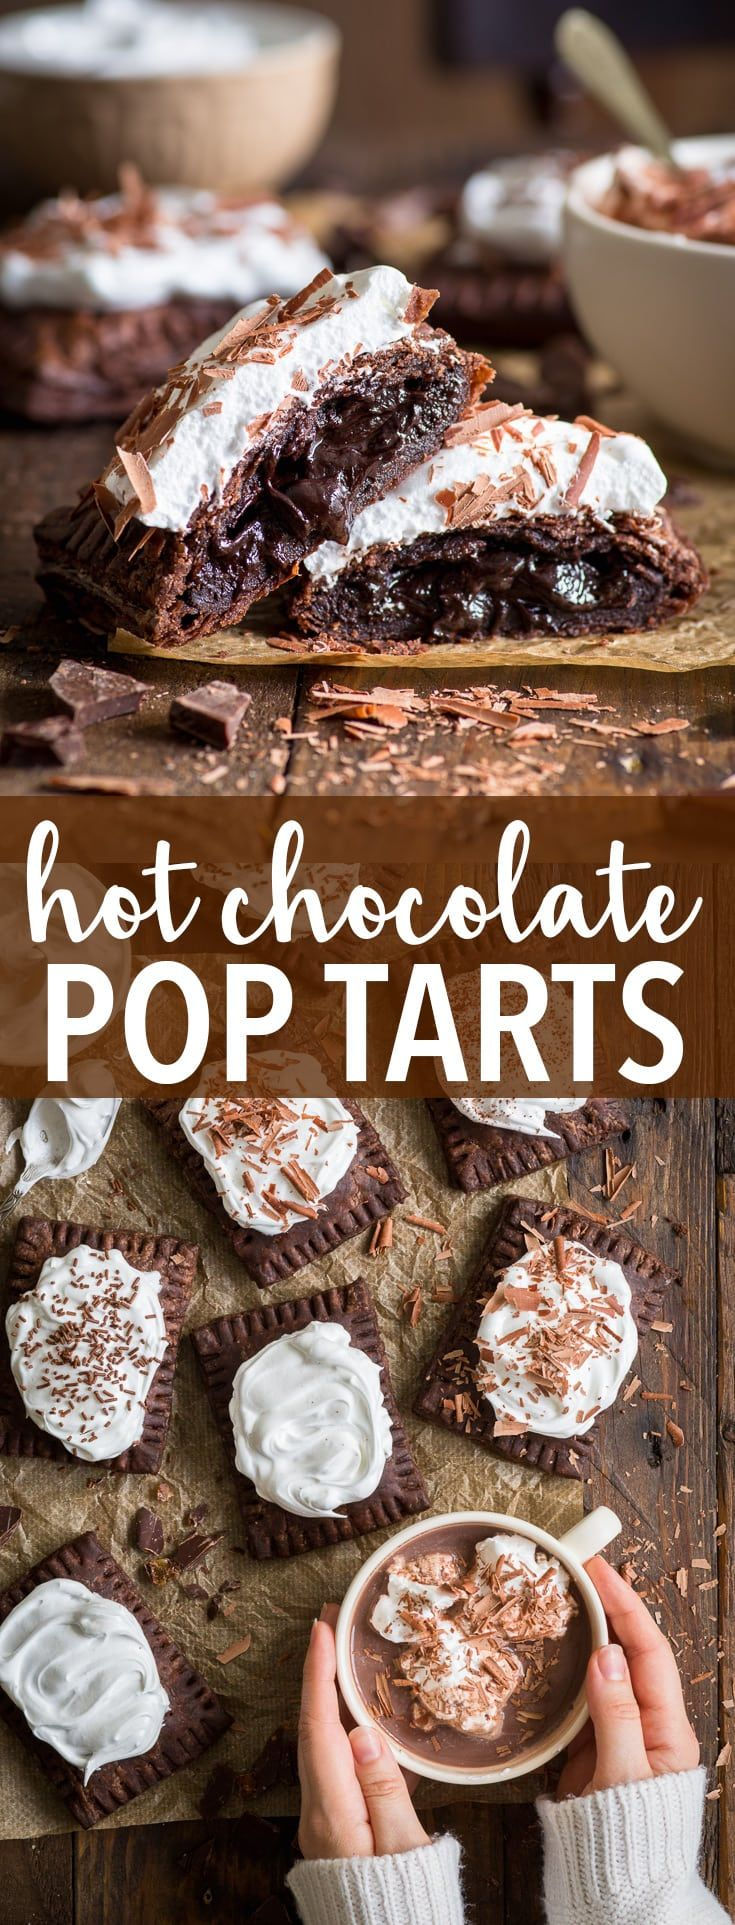 Hot Chocolate Pop Tarts (Gluten Free) - [SPONSORED] Combine everyone's favourite winter drink with the wonder that are pop tarts – and you get these EPIC hot chocolate pop tarts! With a super flaky chocolate pie crust, a decadent chocolate fudge filling and a fluffy marshmallow meringue frosting, it's impossible not to love them. Gluten free pie crust. Hot chocolate pie. Chocolate dessert recipe. Easy dessert recipe. Winter dessert. Christmas dessert. Homemade pop tarts. #glutenfree #chocolate #chocolatepops